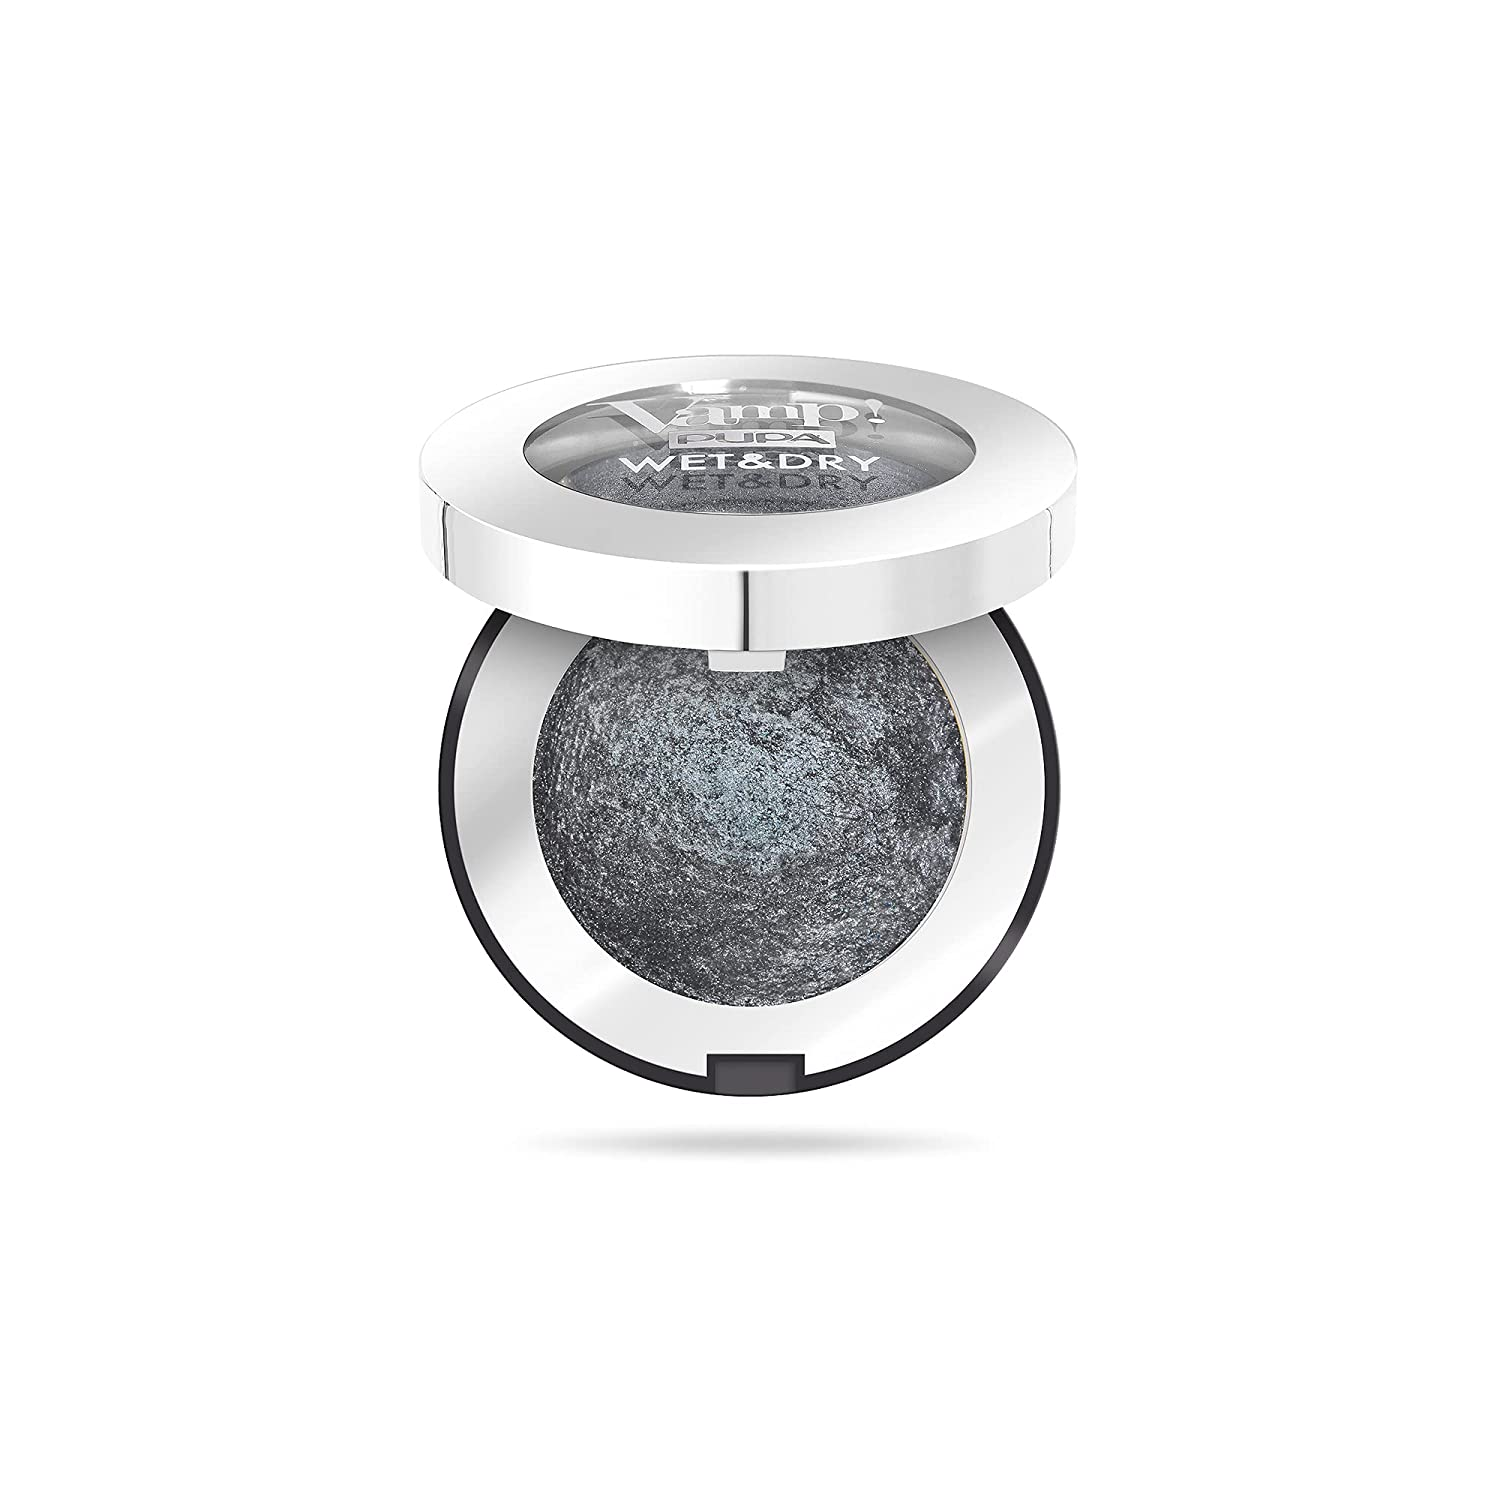 Vamp! Wet and Dry Baked Eyeshadow – 305 Anthracite Grey by Pupa Milano for Women – 0.035 oz Eye Shadow